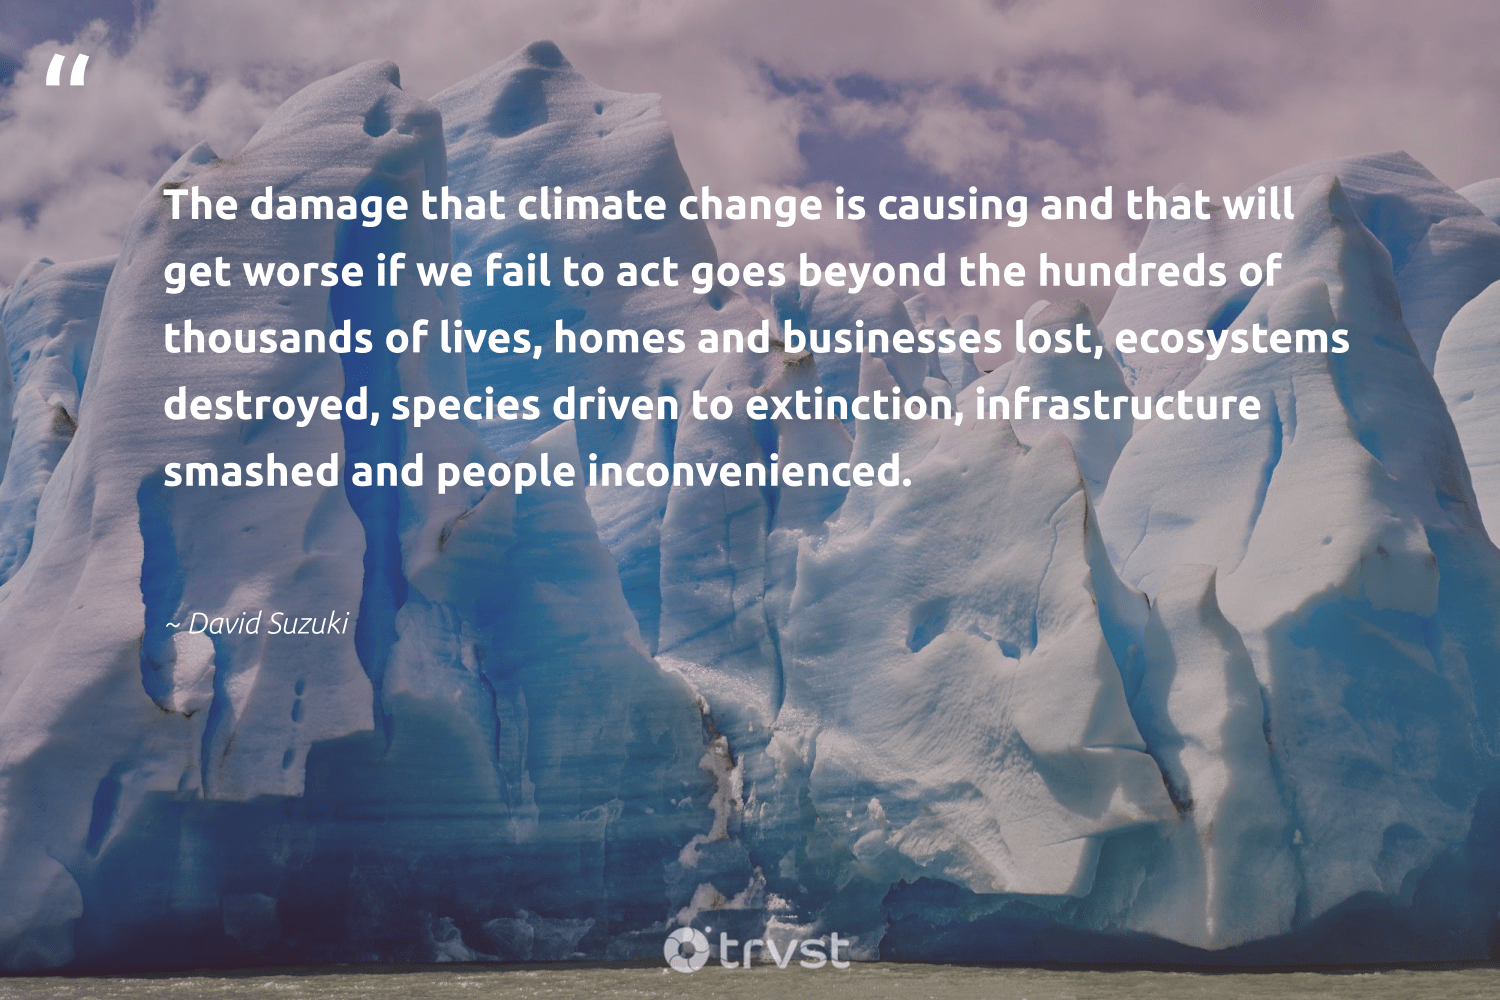 """""""The damage that climate change is causing and that will get worse if we fail to act goes beyond the hundreds of thousands of lives, homes and businesses lost, ecosystems destroyed, species driven to extinction, infrastructure smashed and people inconvenienced.""""  - David Suzuki #trvst #quotes #climatechange #extinction #climate #globalwarming #endangered #ecoconscious #climatechangeisreal #socialimpact #co2 #endemic"""